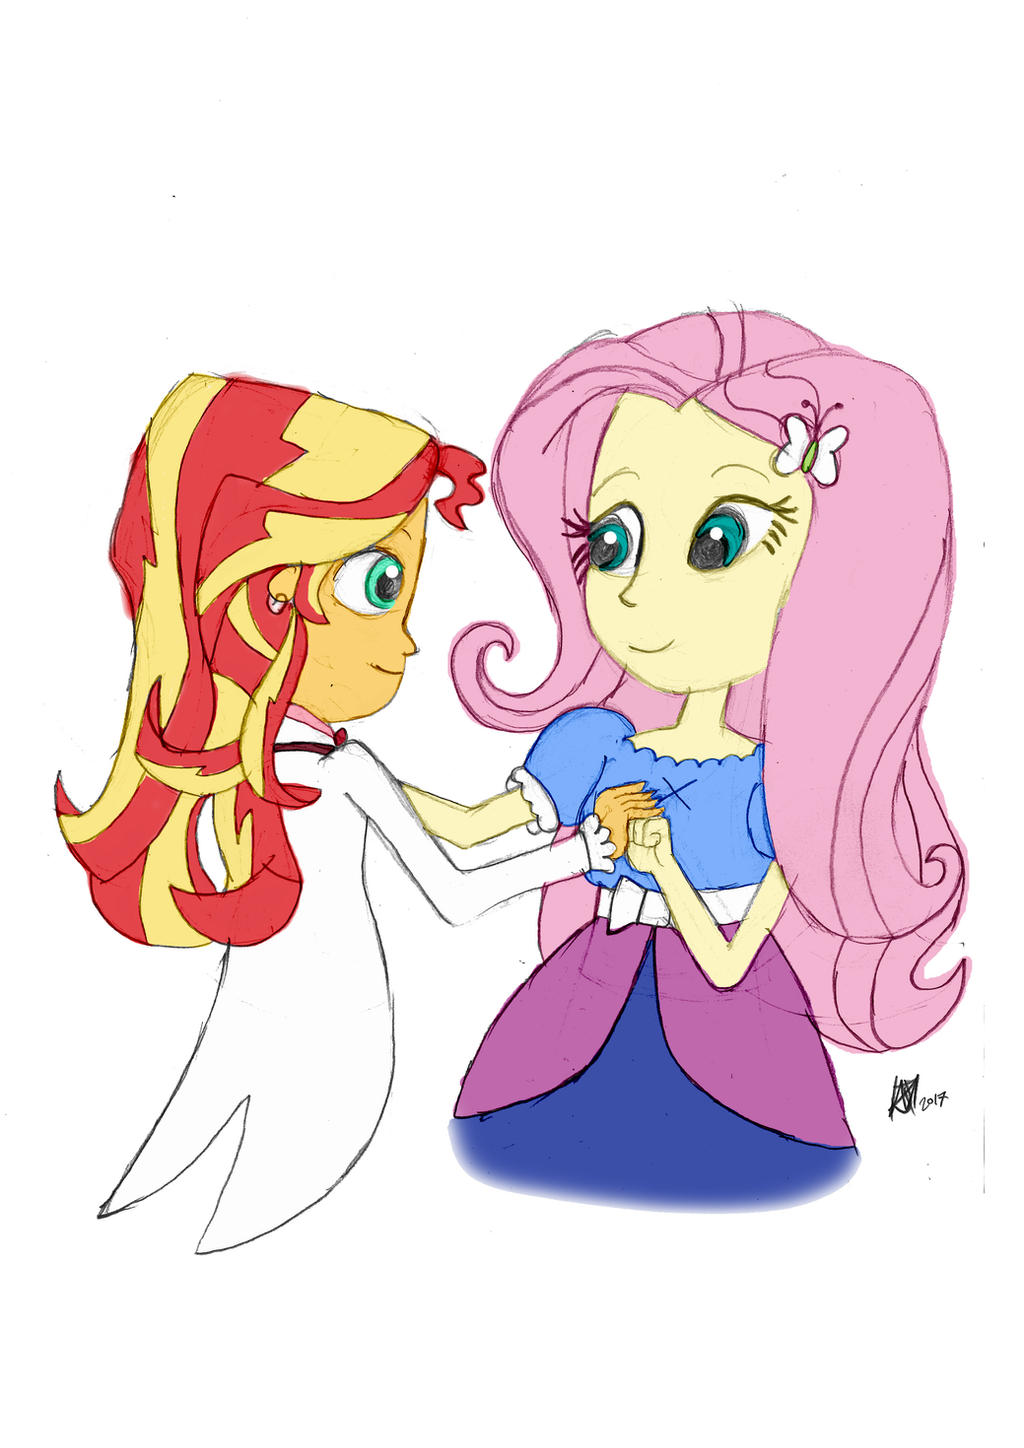 S. Shimmer and Fluttershy at the Silver Bell Ball by JMK-Prime